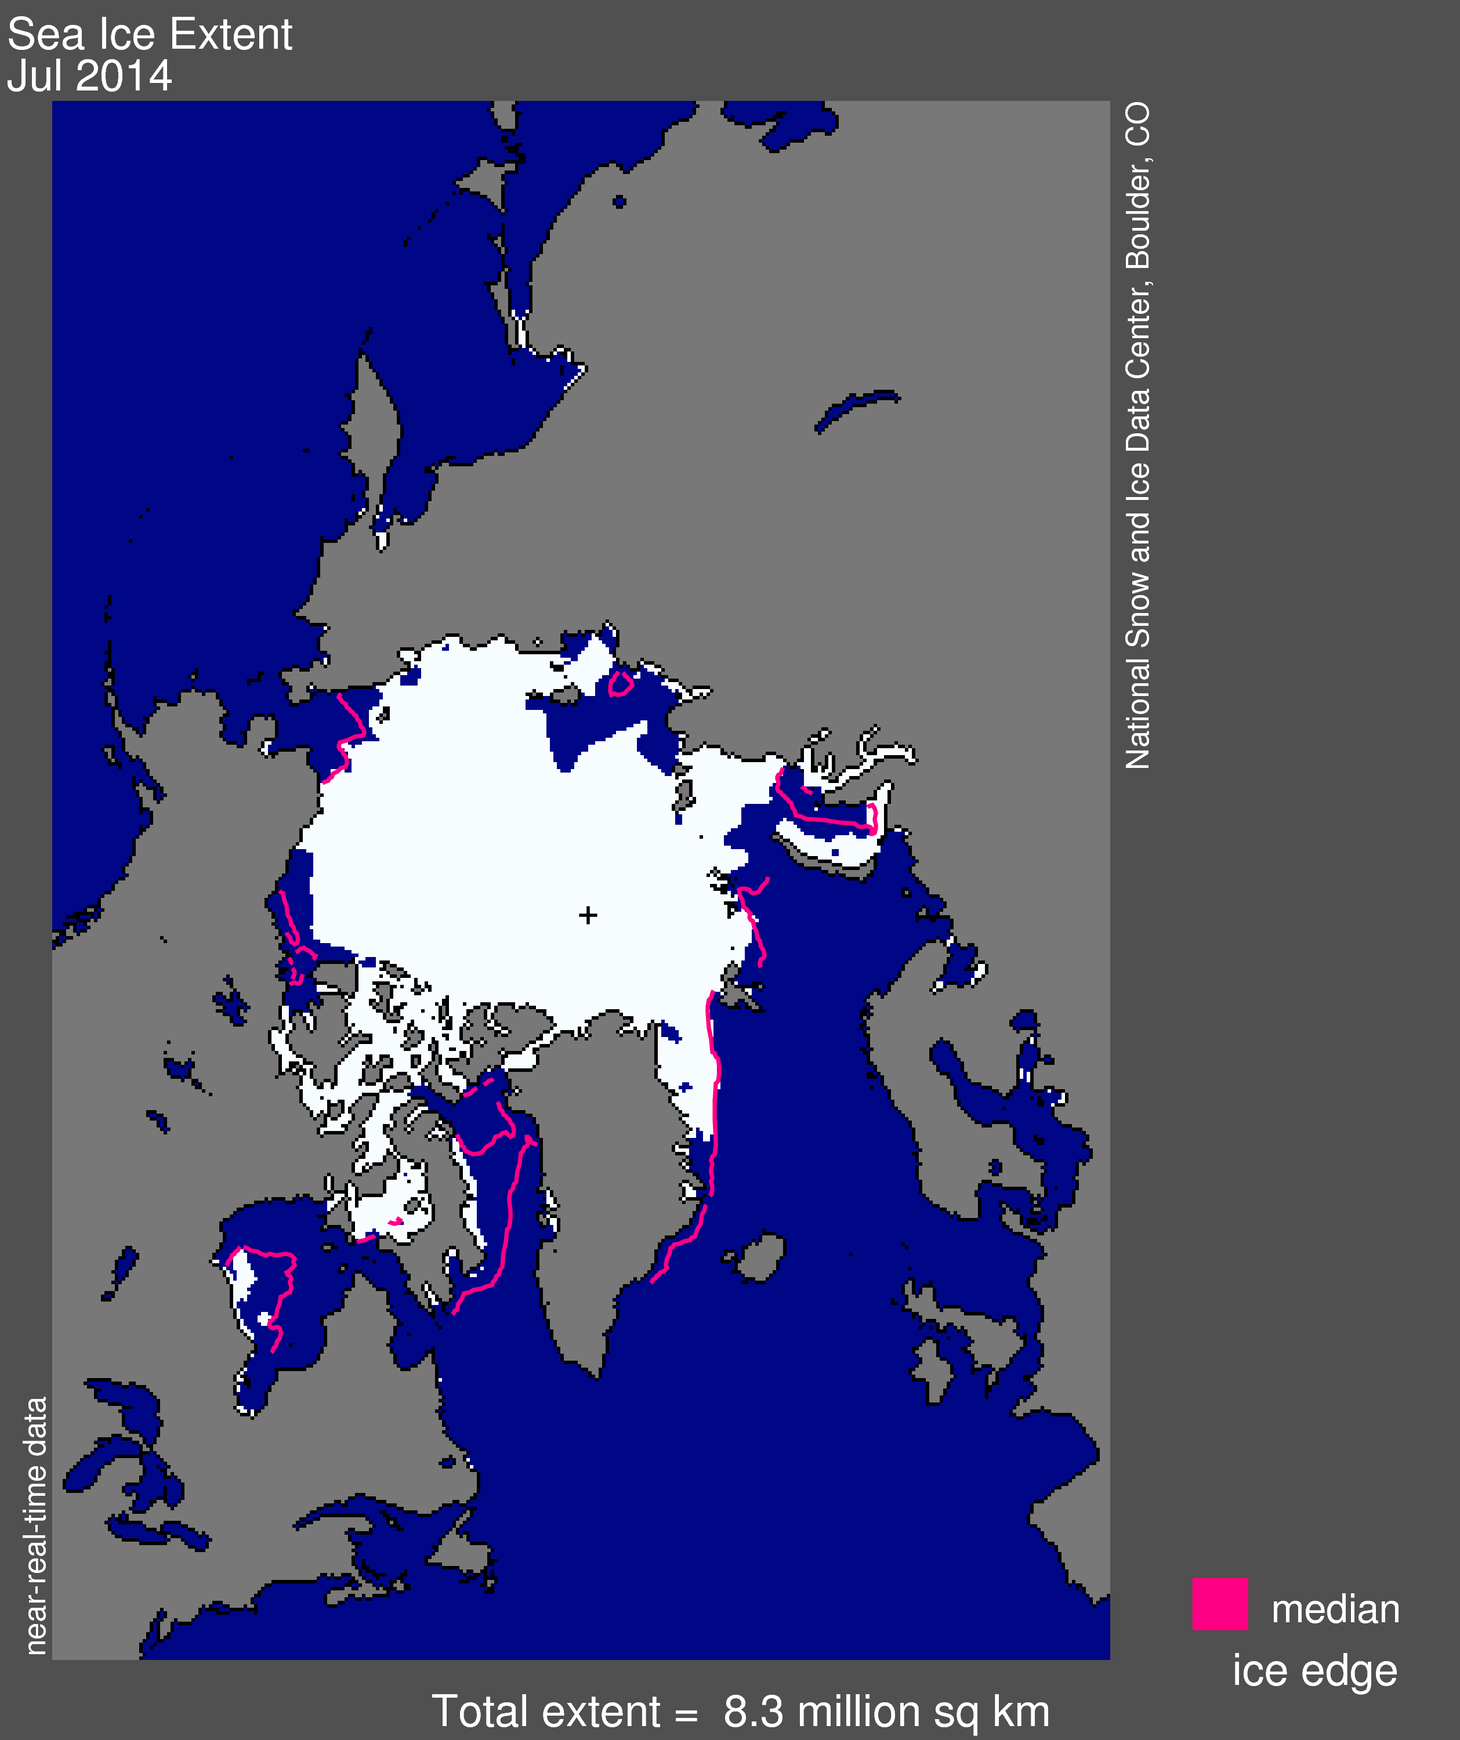 This map shows the extent of Arctic sea ice in July 2014. It was 3.19 million square miles (8.25 million square kilometers). The magenta lines show the 1981 to 2010 median extent for that month. The black cross indicates the geographic North Pole.